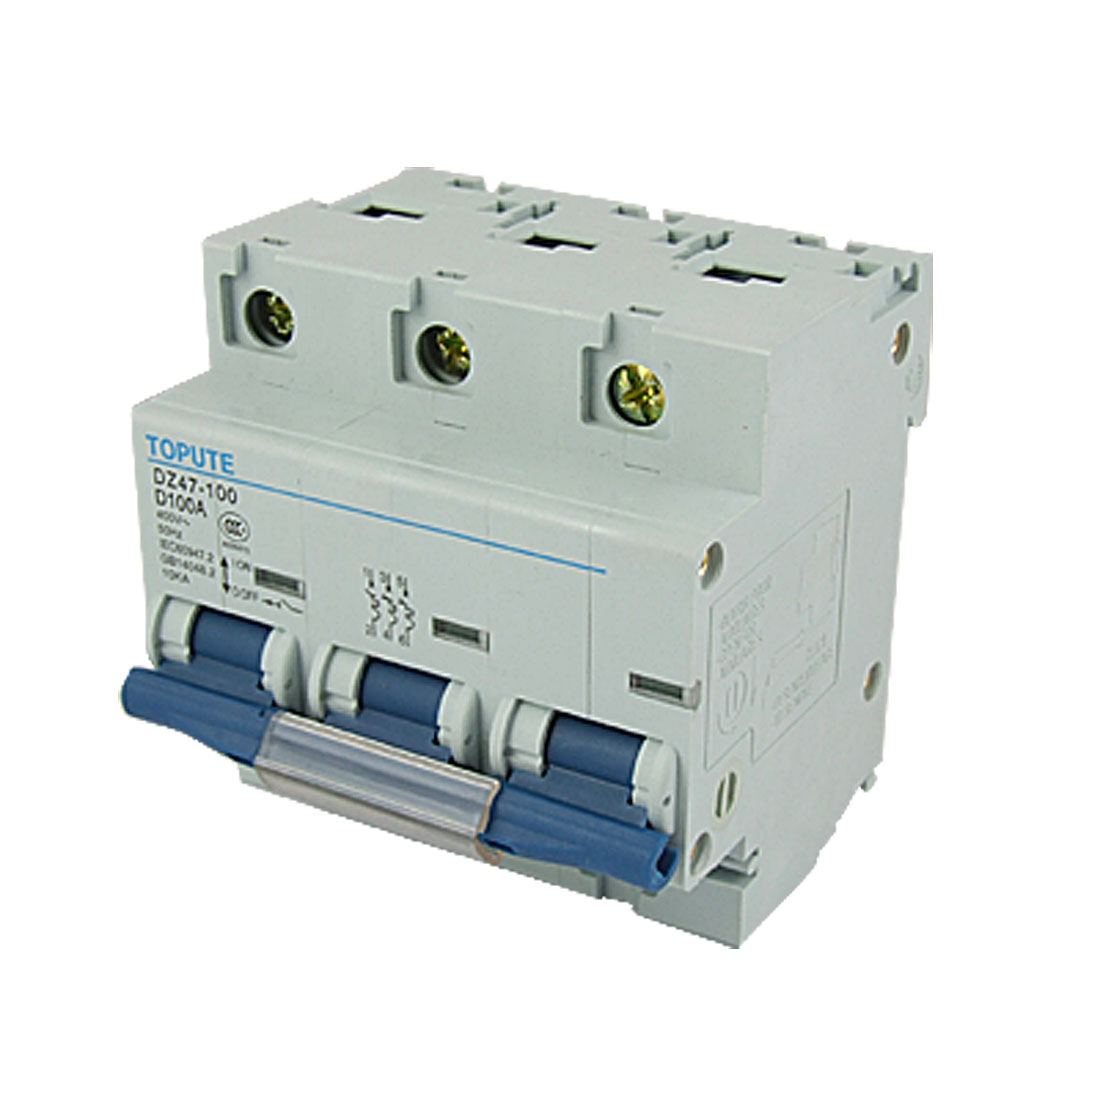 DZ47-100 D100A Three Poles MCB Mini Circuit Breaker